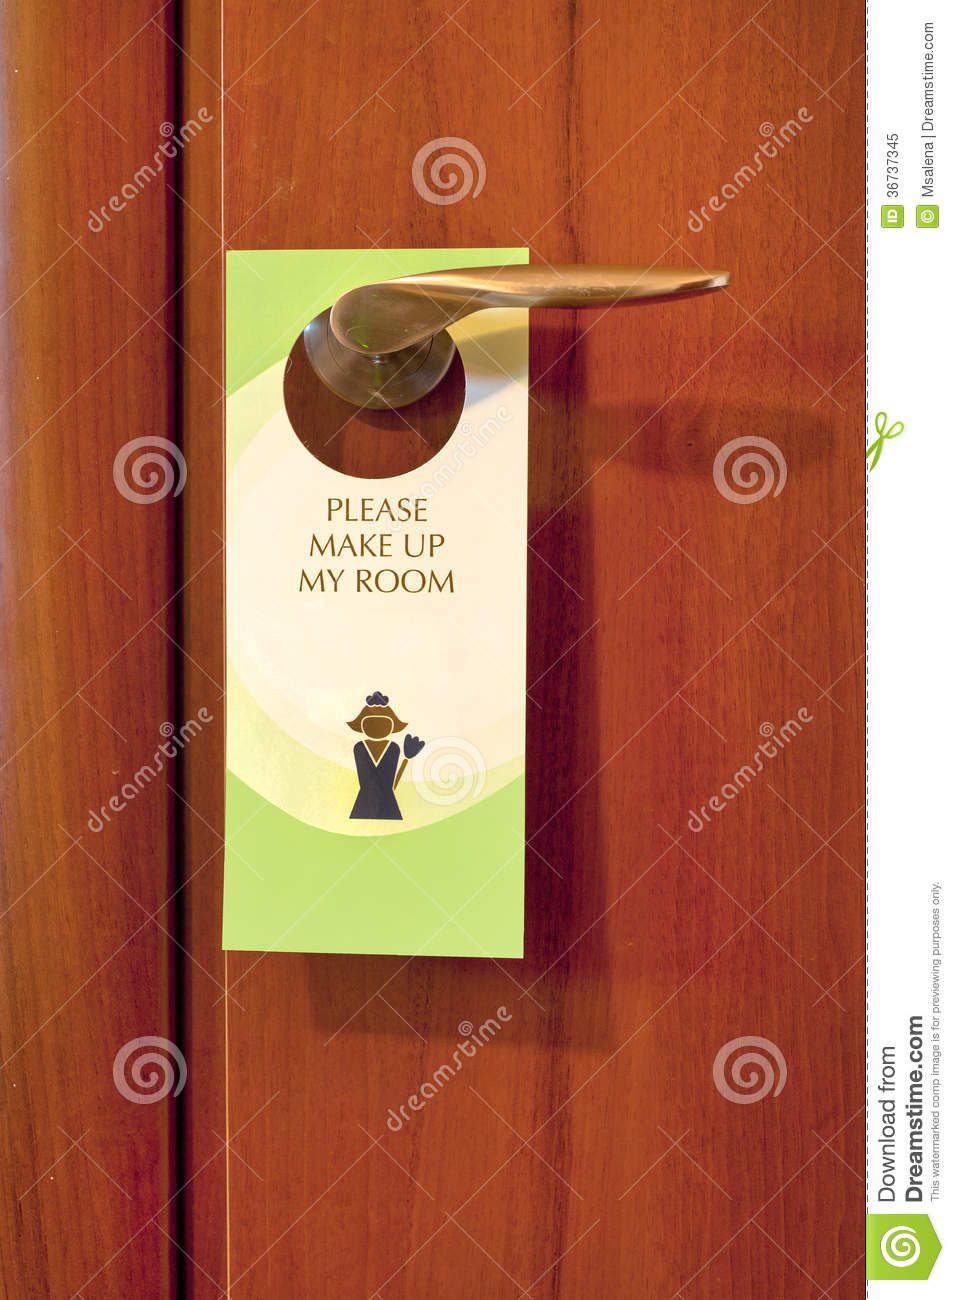 Le Meilleur Hotel Door Note Stock Image Image Of Maid Profession Ce Mois Ci